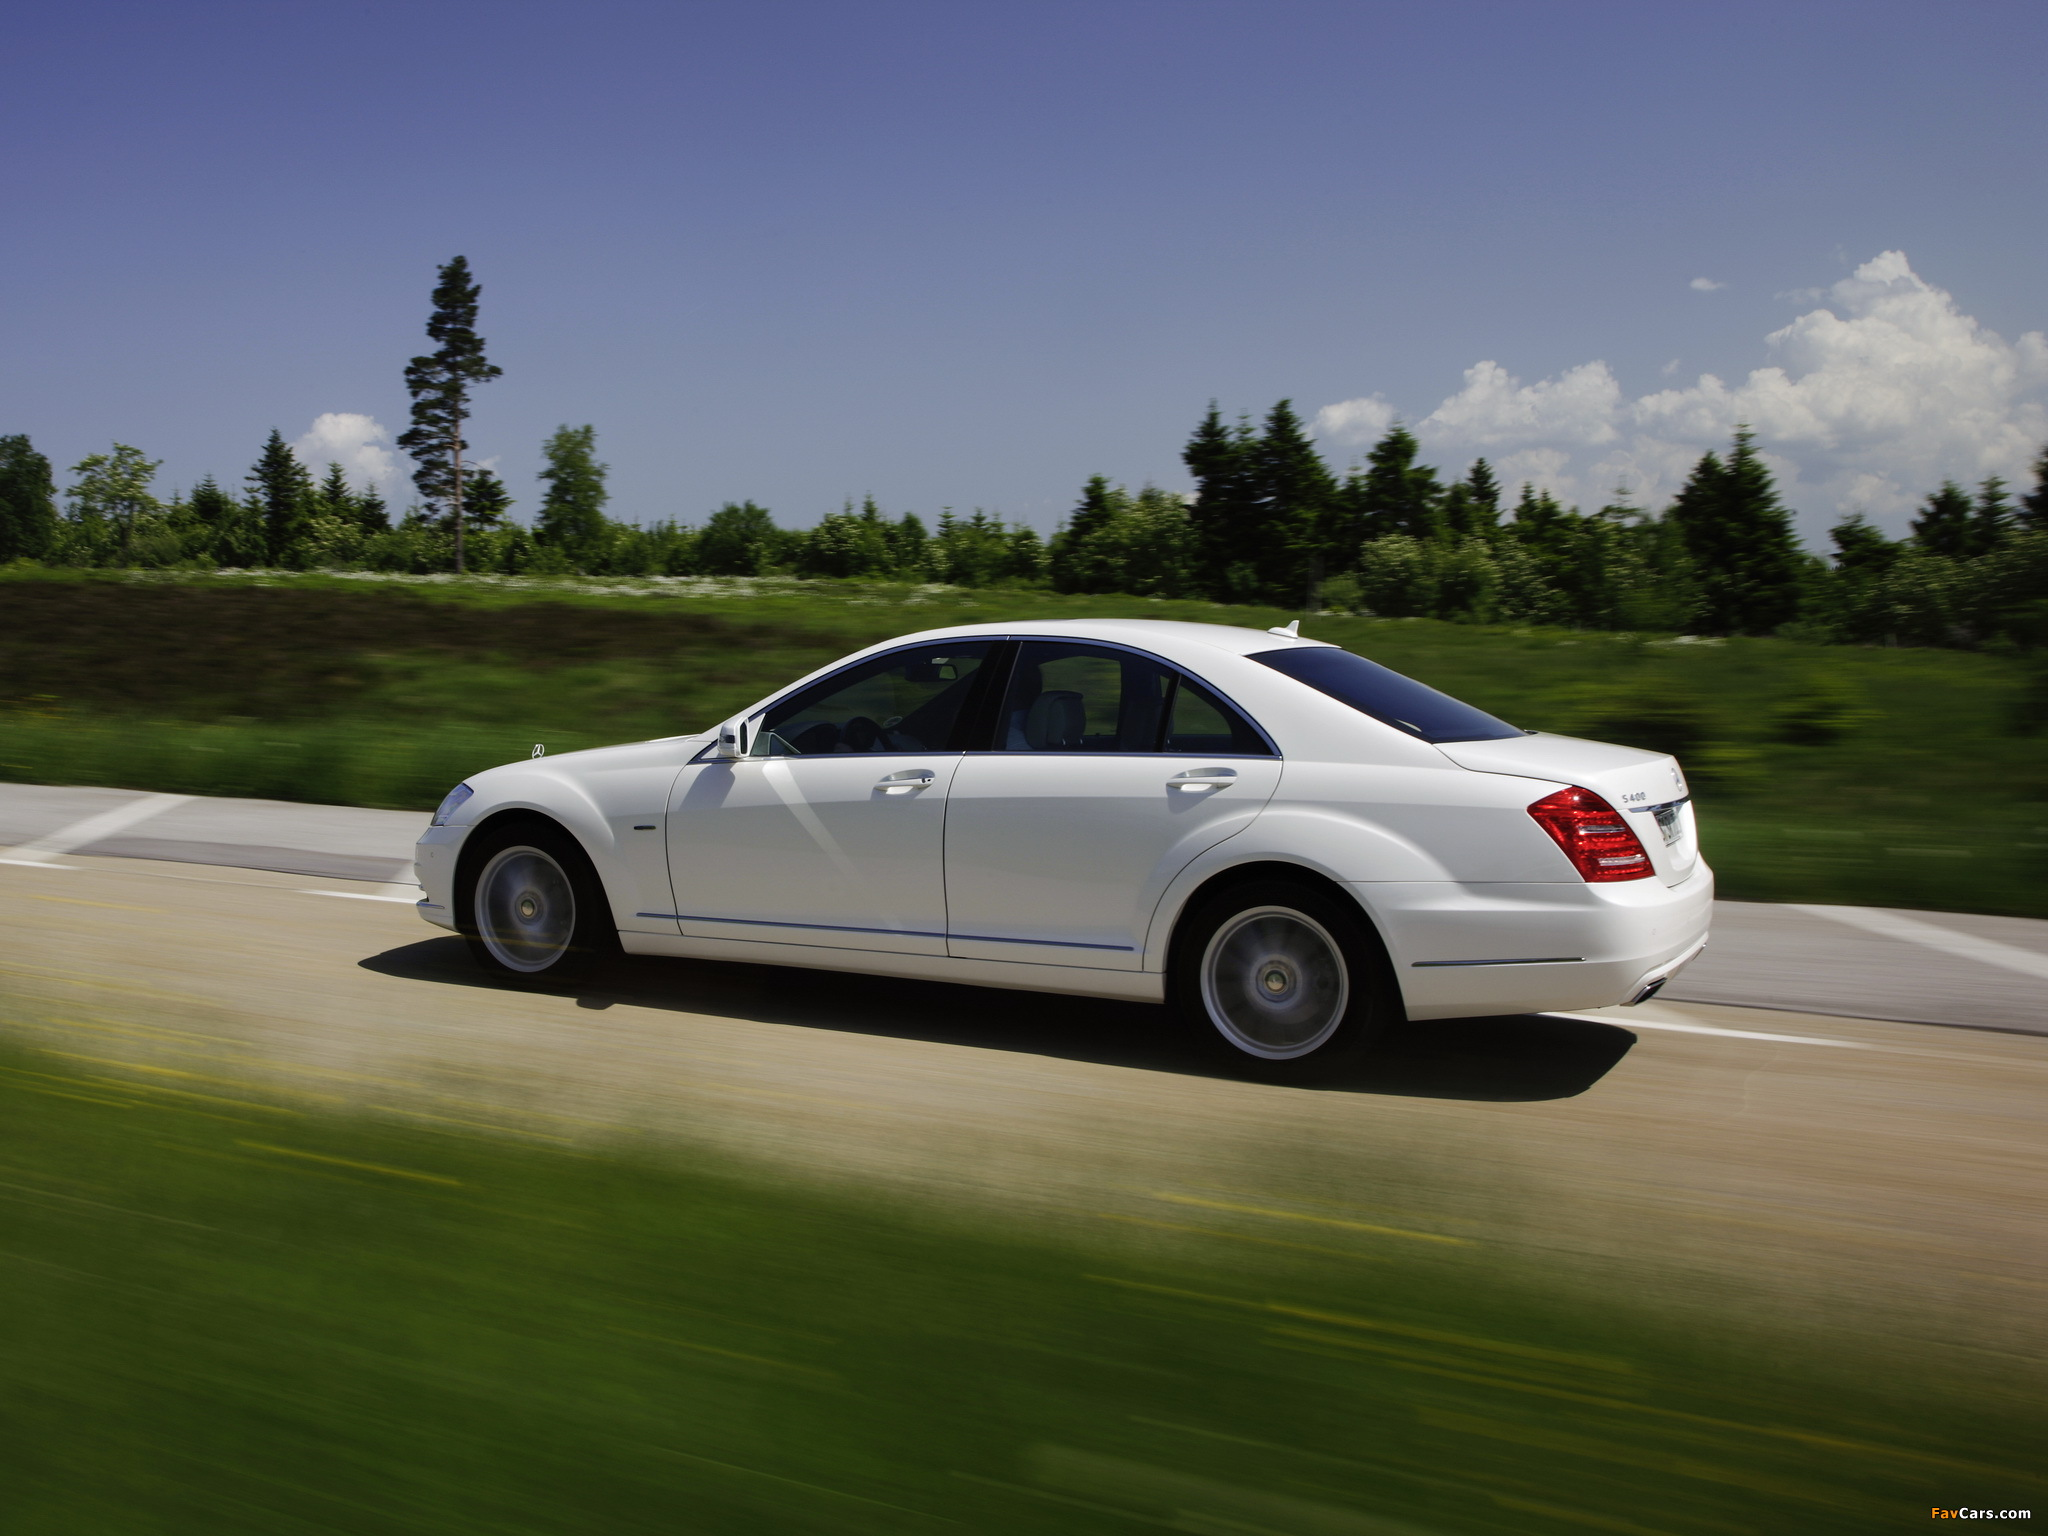 Mercedes Benz S 400 Hybrid W221 2009 13 Wallpapers 2048x1536 Images, Photos, Reviews